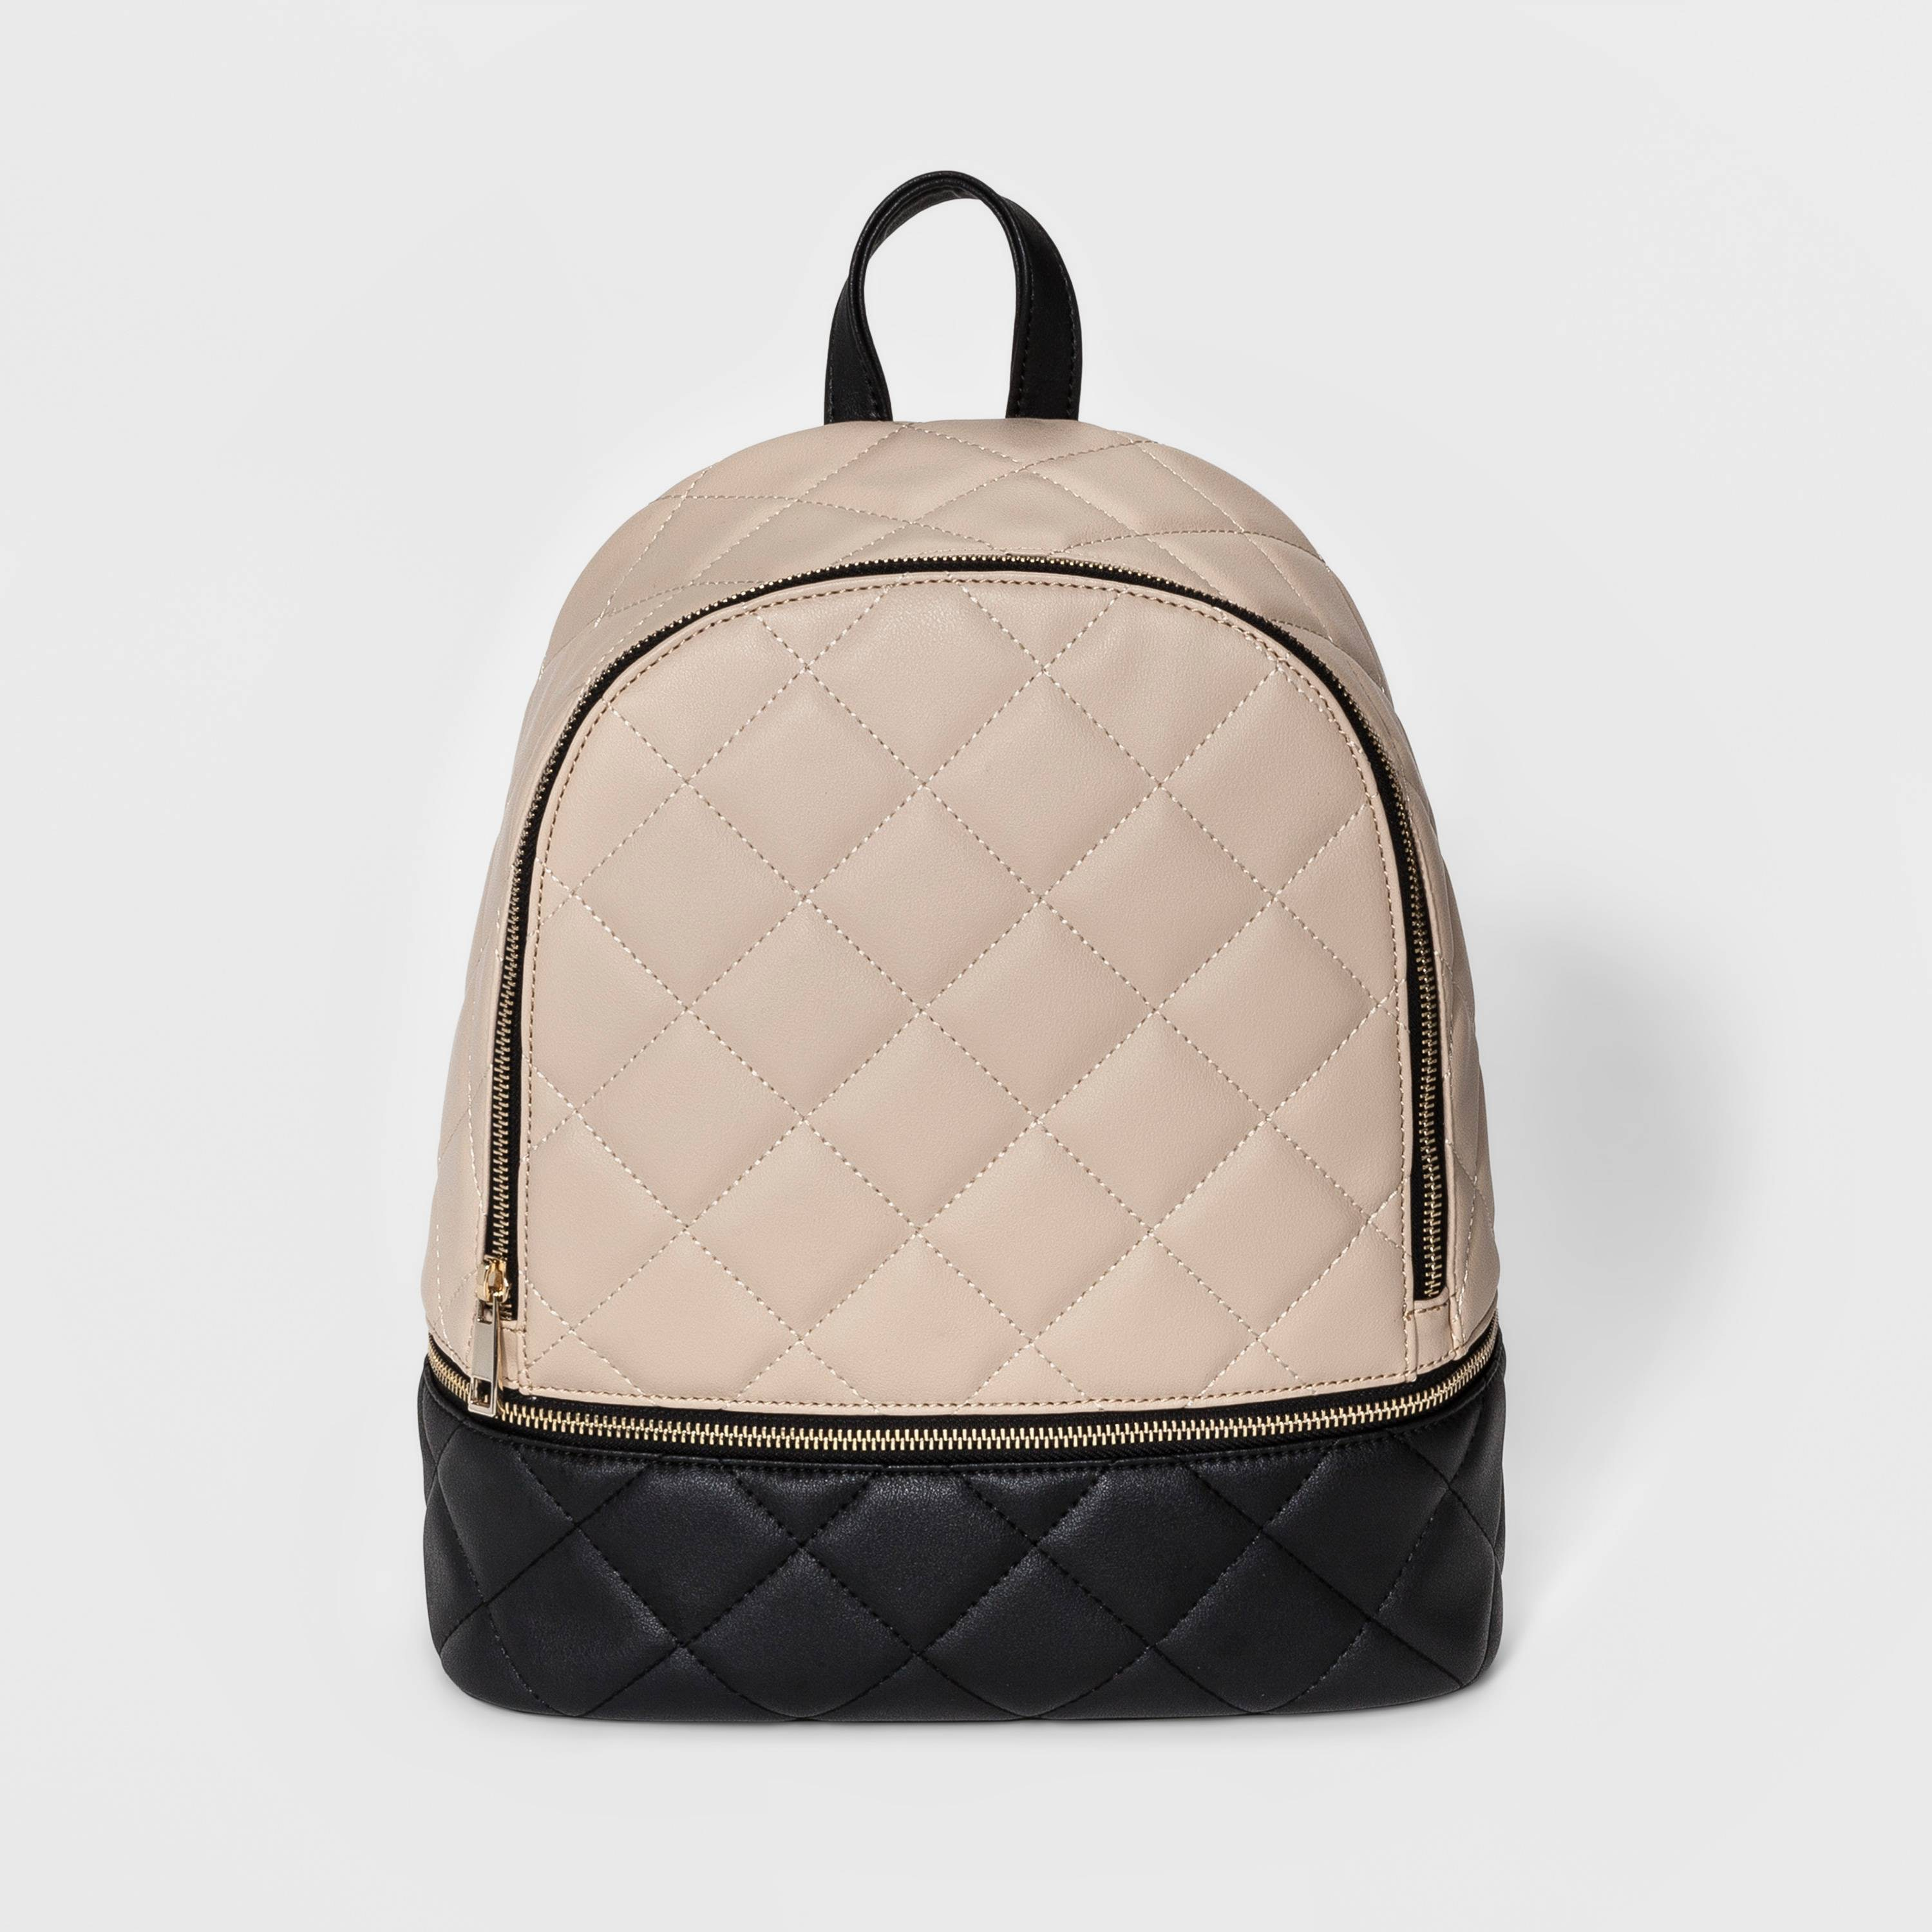 6afa2a31d83e 31 Backpacks Under  50 That Make Ridiculously Chic Carryalls